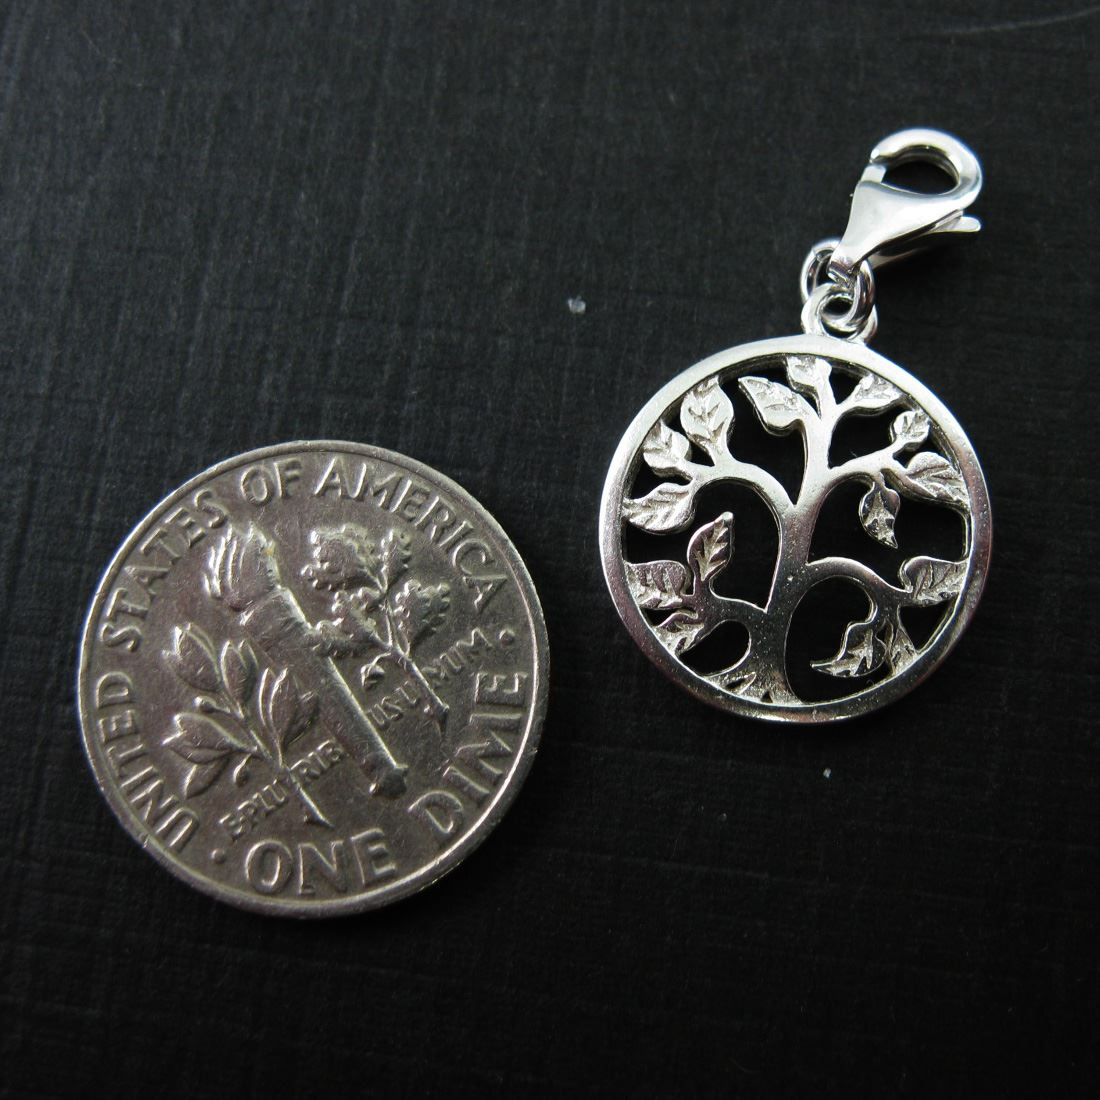 Sterling Silver Tree with Leaves Charm - Charm with Clasp - Charm Bracelet Charm- Add on Charm